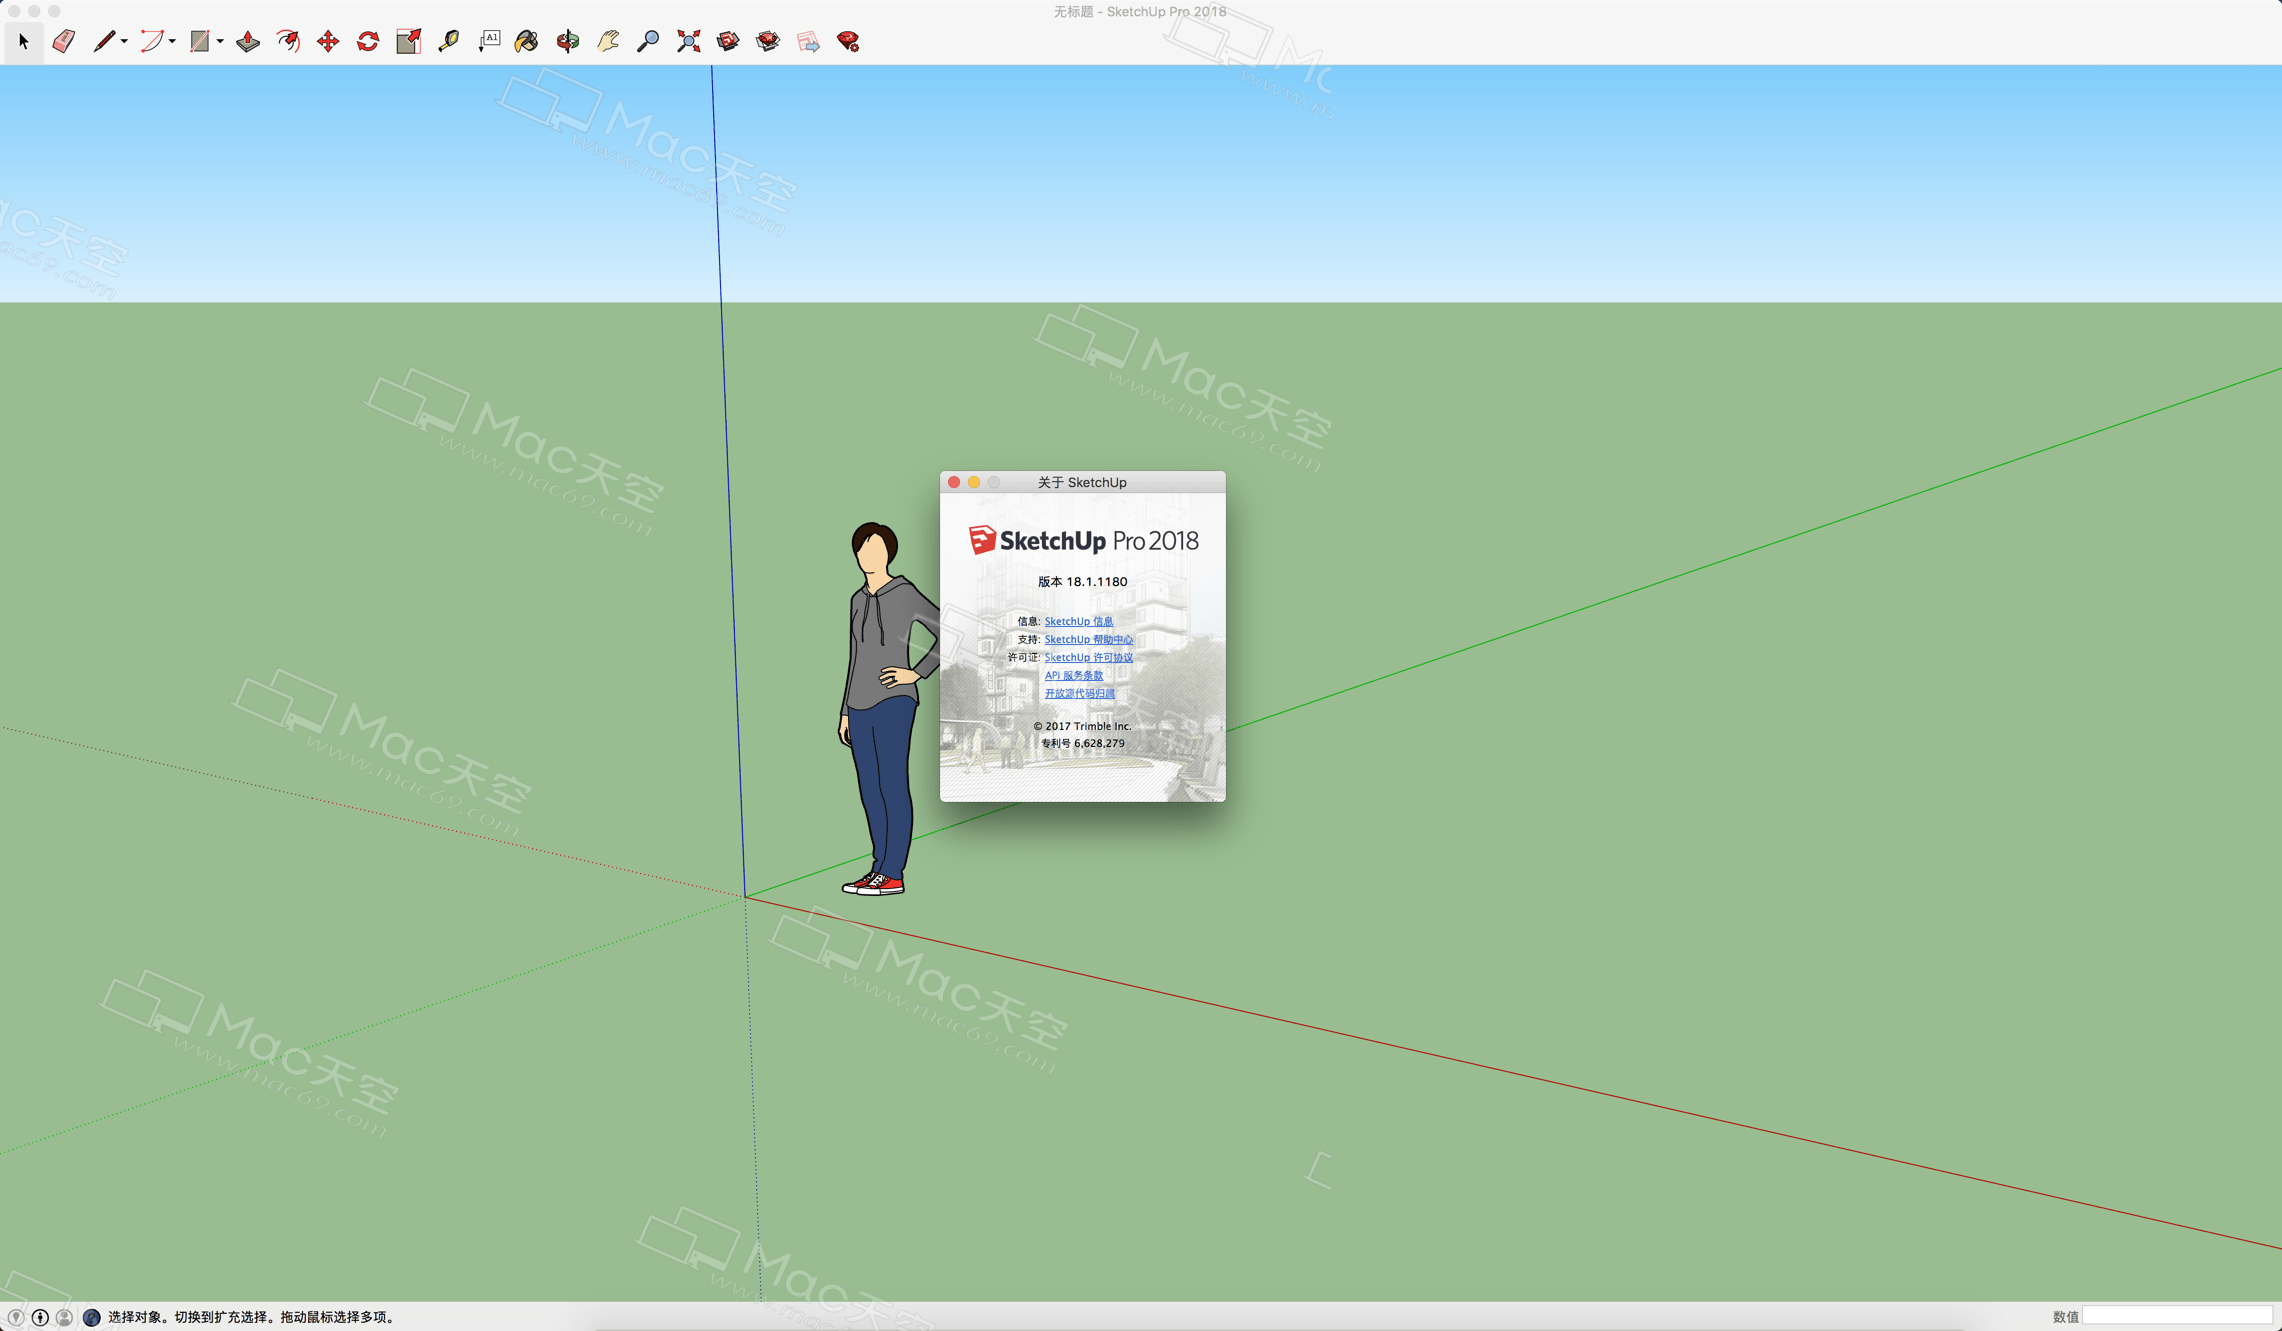 SketchUp Pro 2018 for Mac (Sketch Master) Free Activation